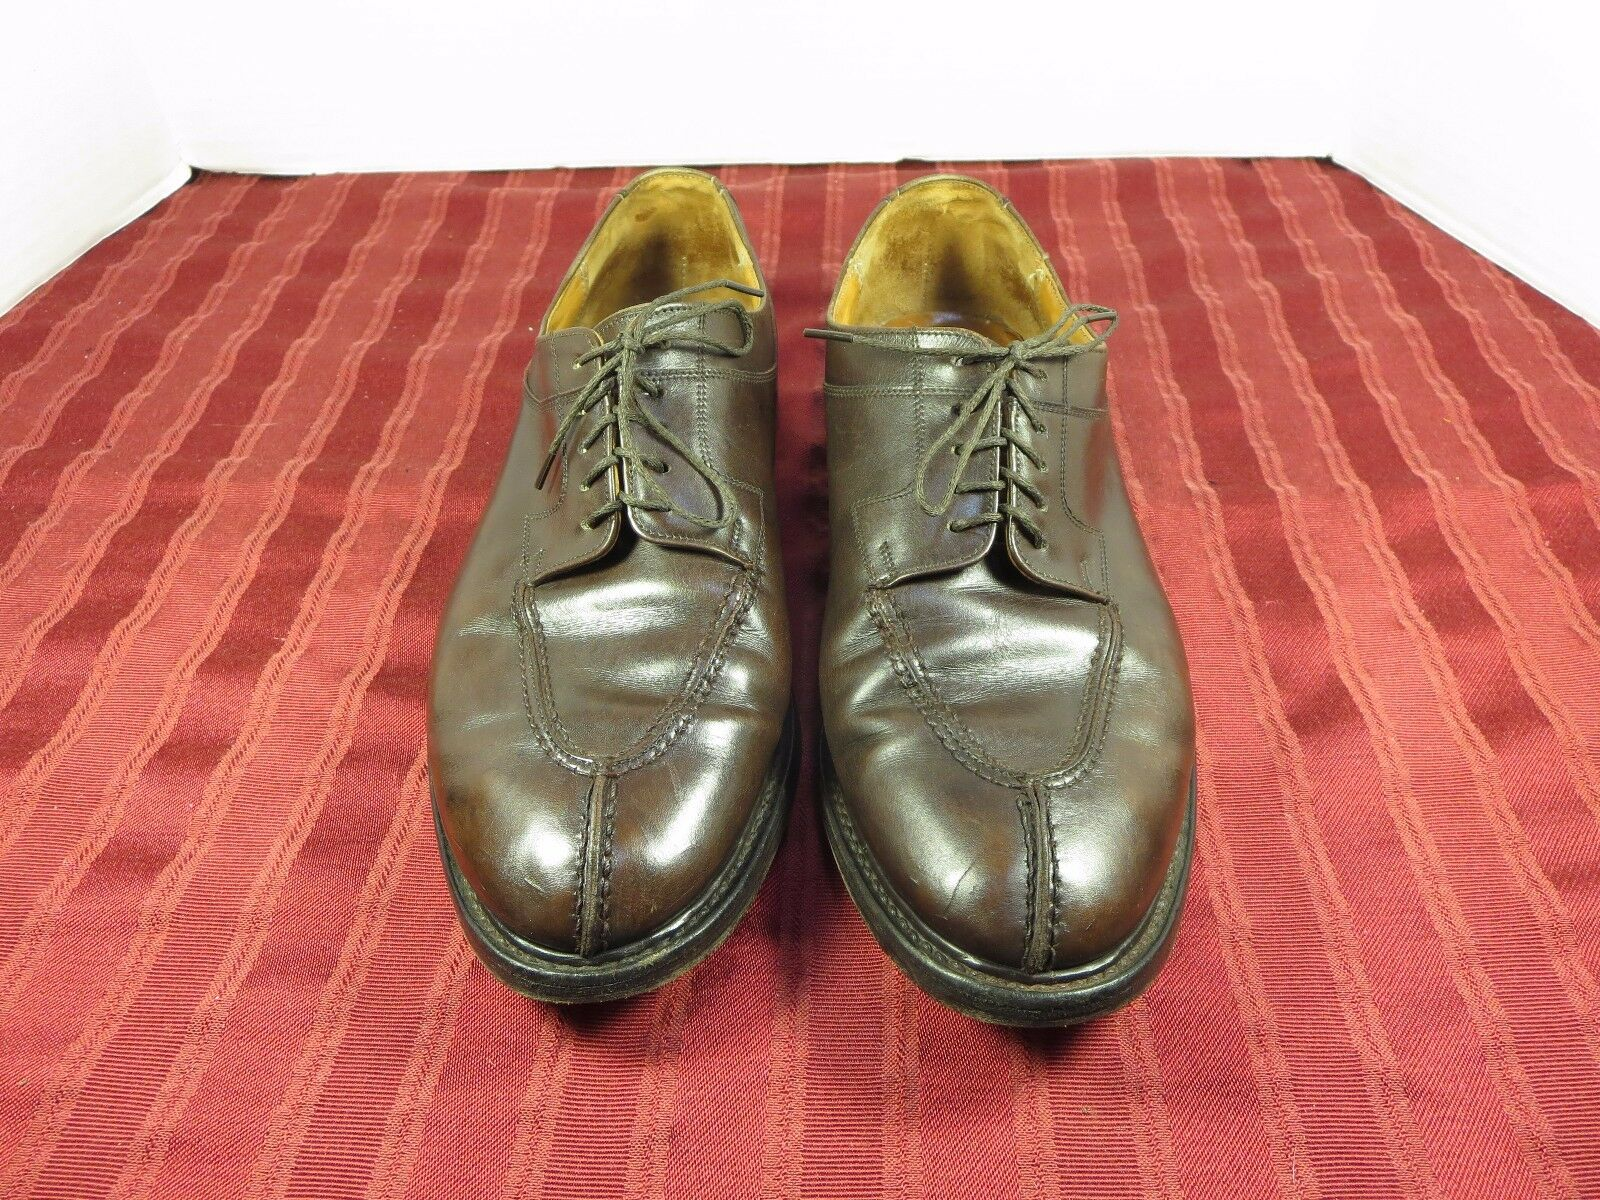 To Boot Leather Split Toe Dress Oxford Shoes Men England Size 10 Made in England Men Vintage 476c68